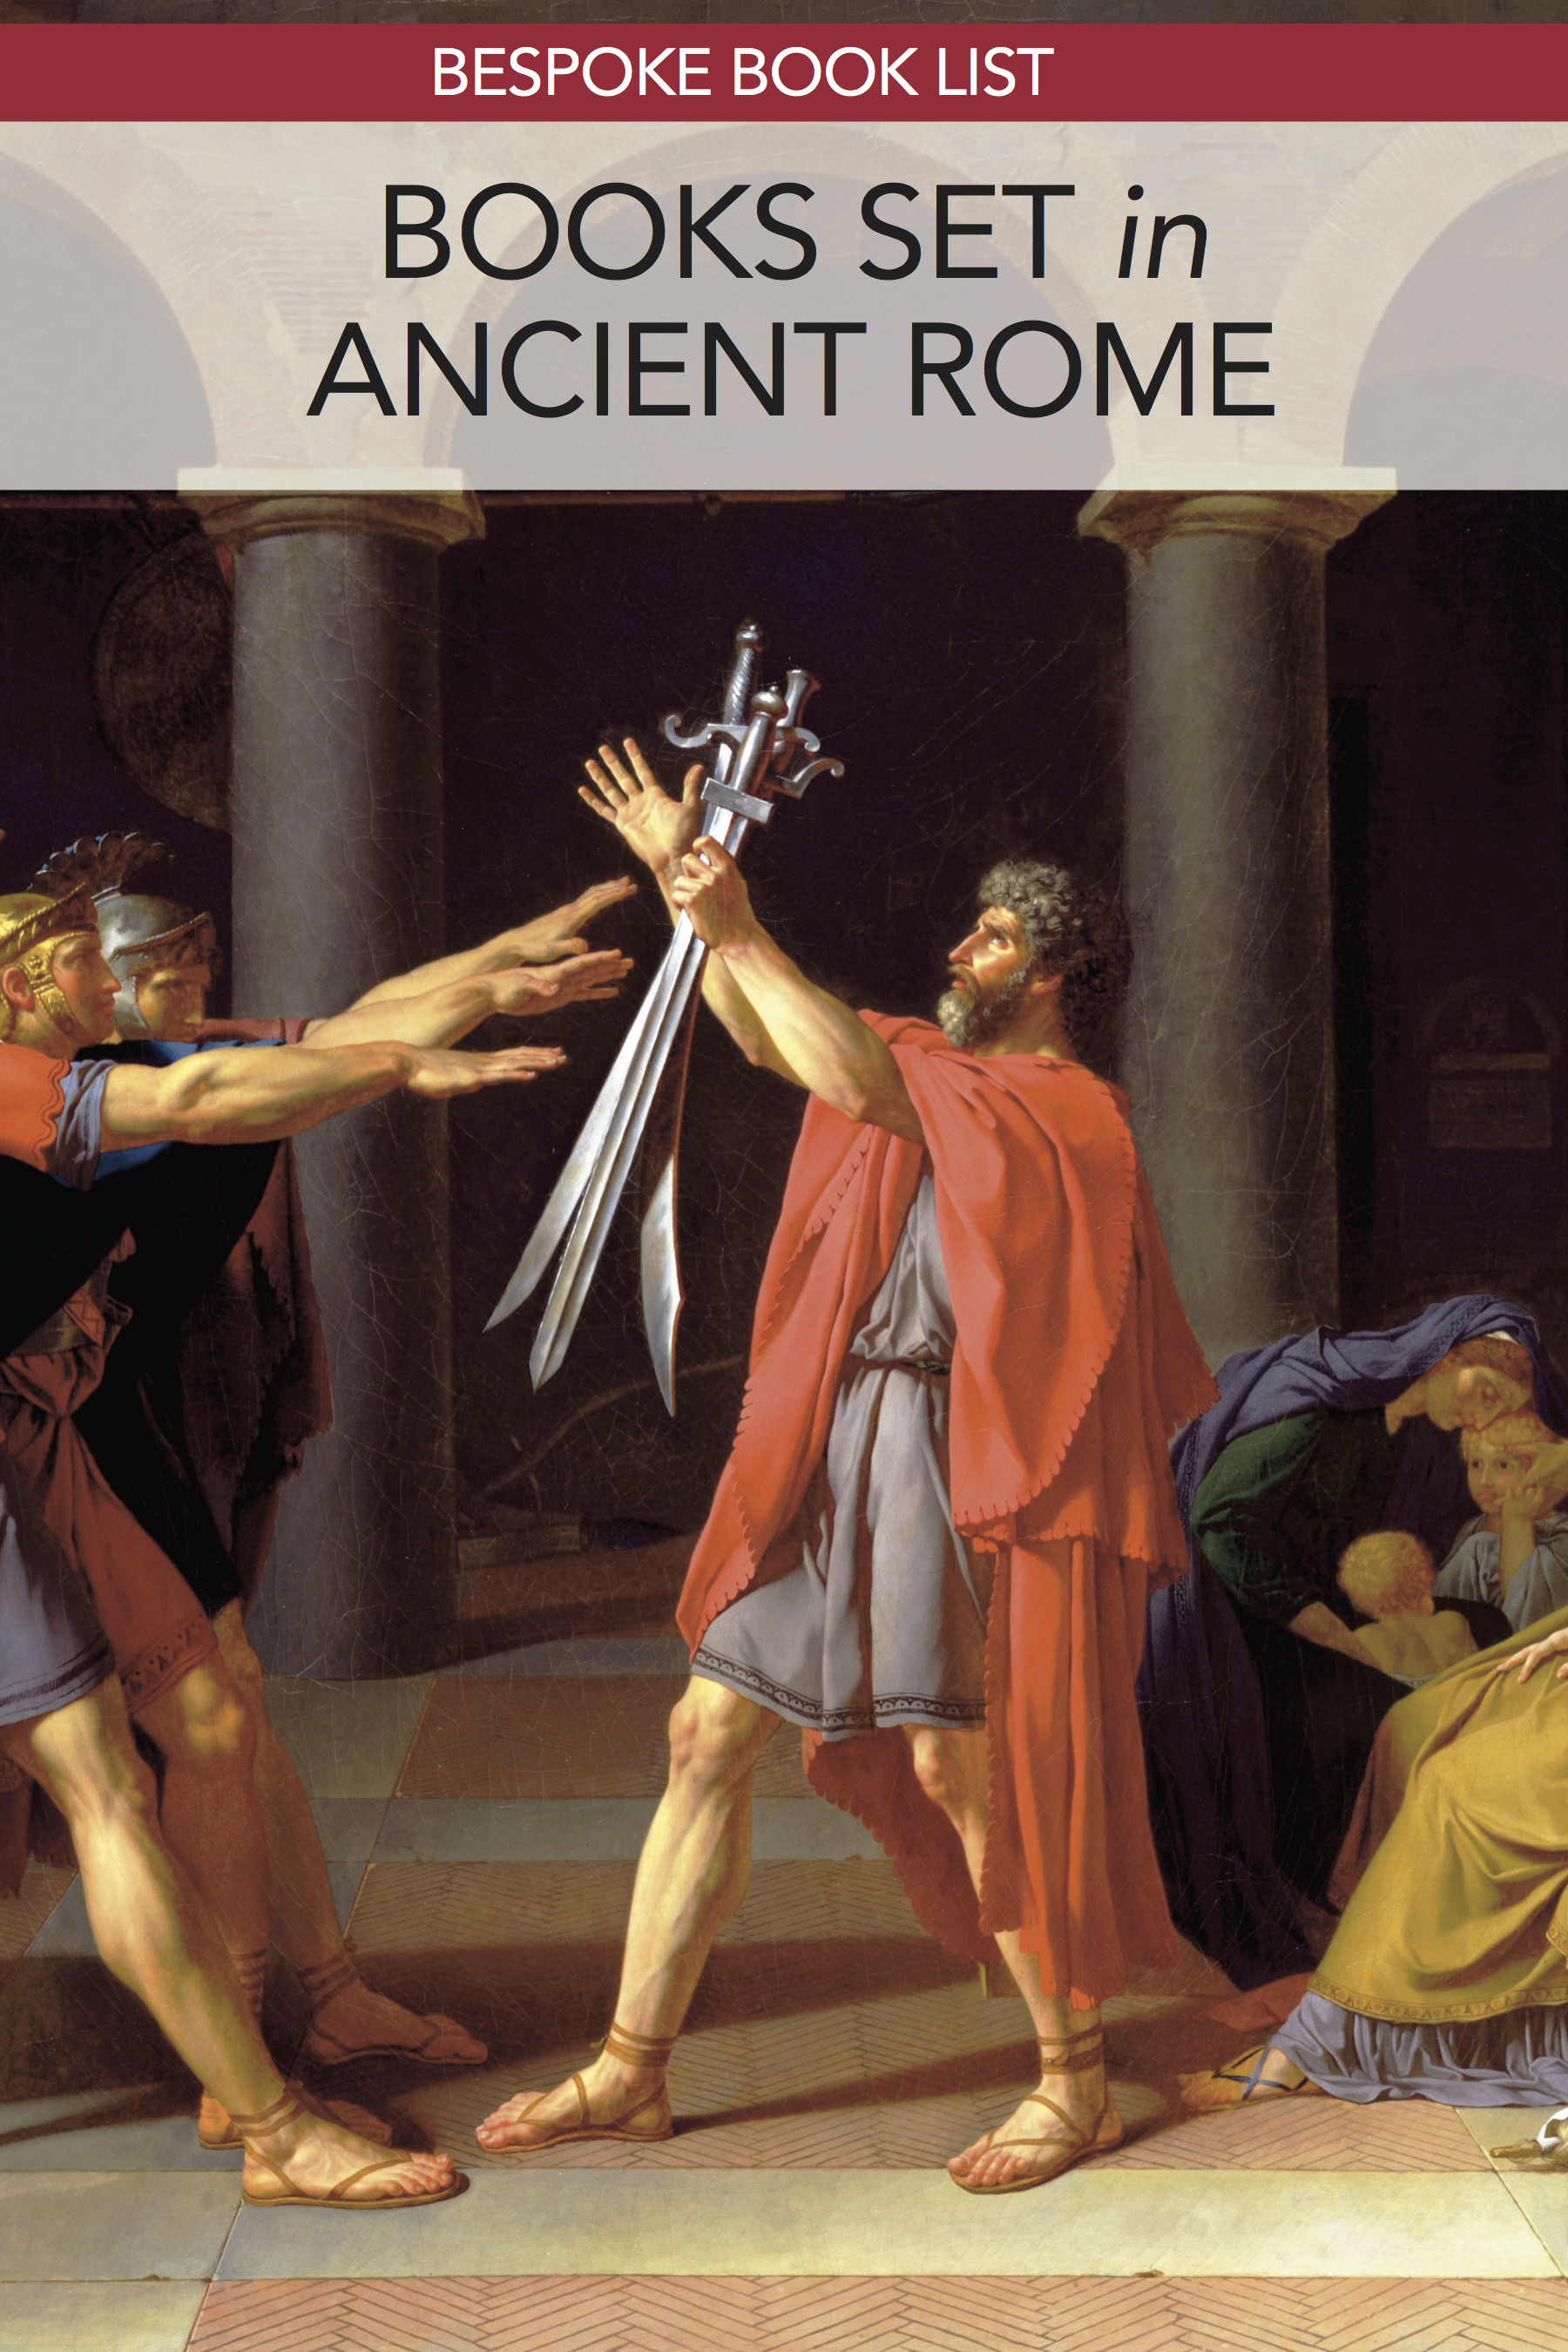 My kids are obsessed with ancient Rome, and I'd love to find a few fun readalouds set in classical Roman times. Any suggestions?